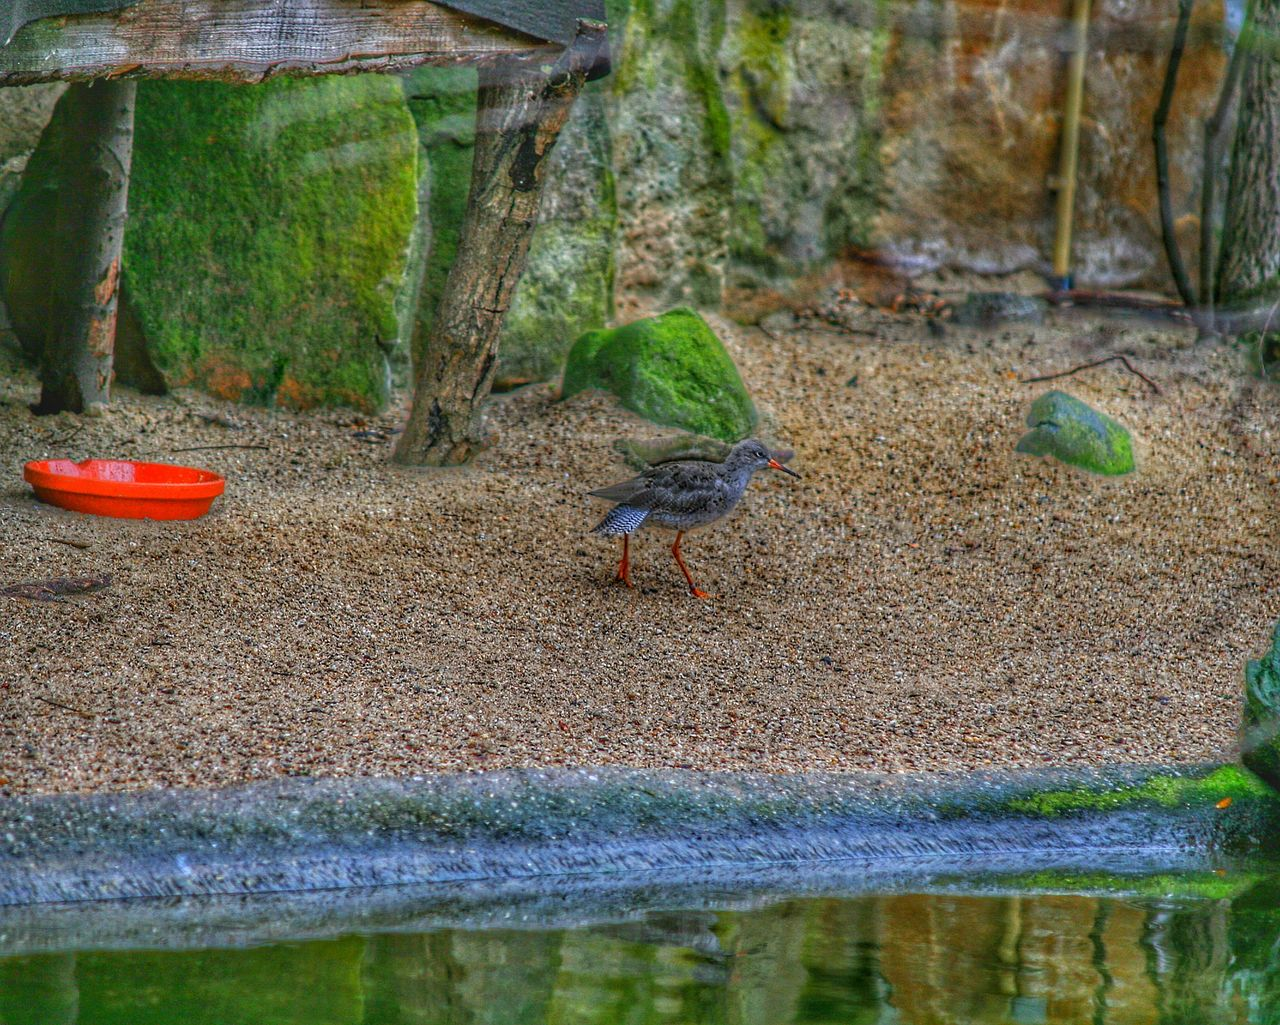 animal themes, animal, animals in the wild, animal wildlife, vertebrate, one animal, bird, water, no people, day, nature, lake, plant, wood - material, outdoors, land, tree, selective focus